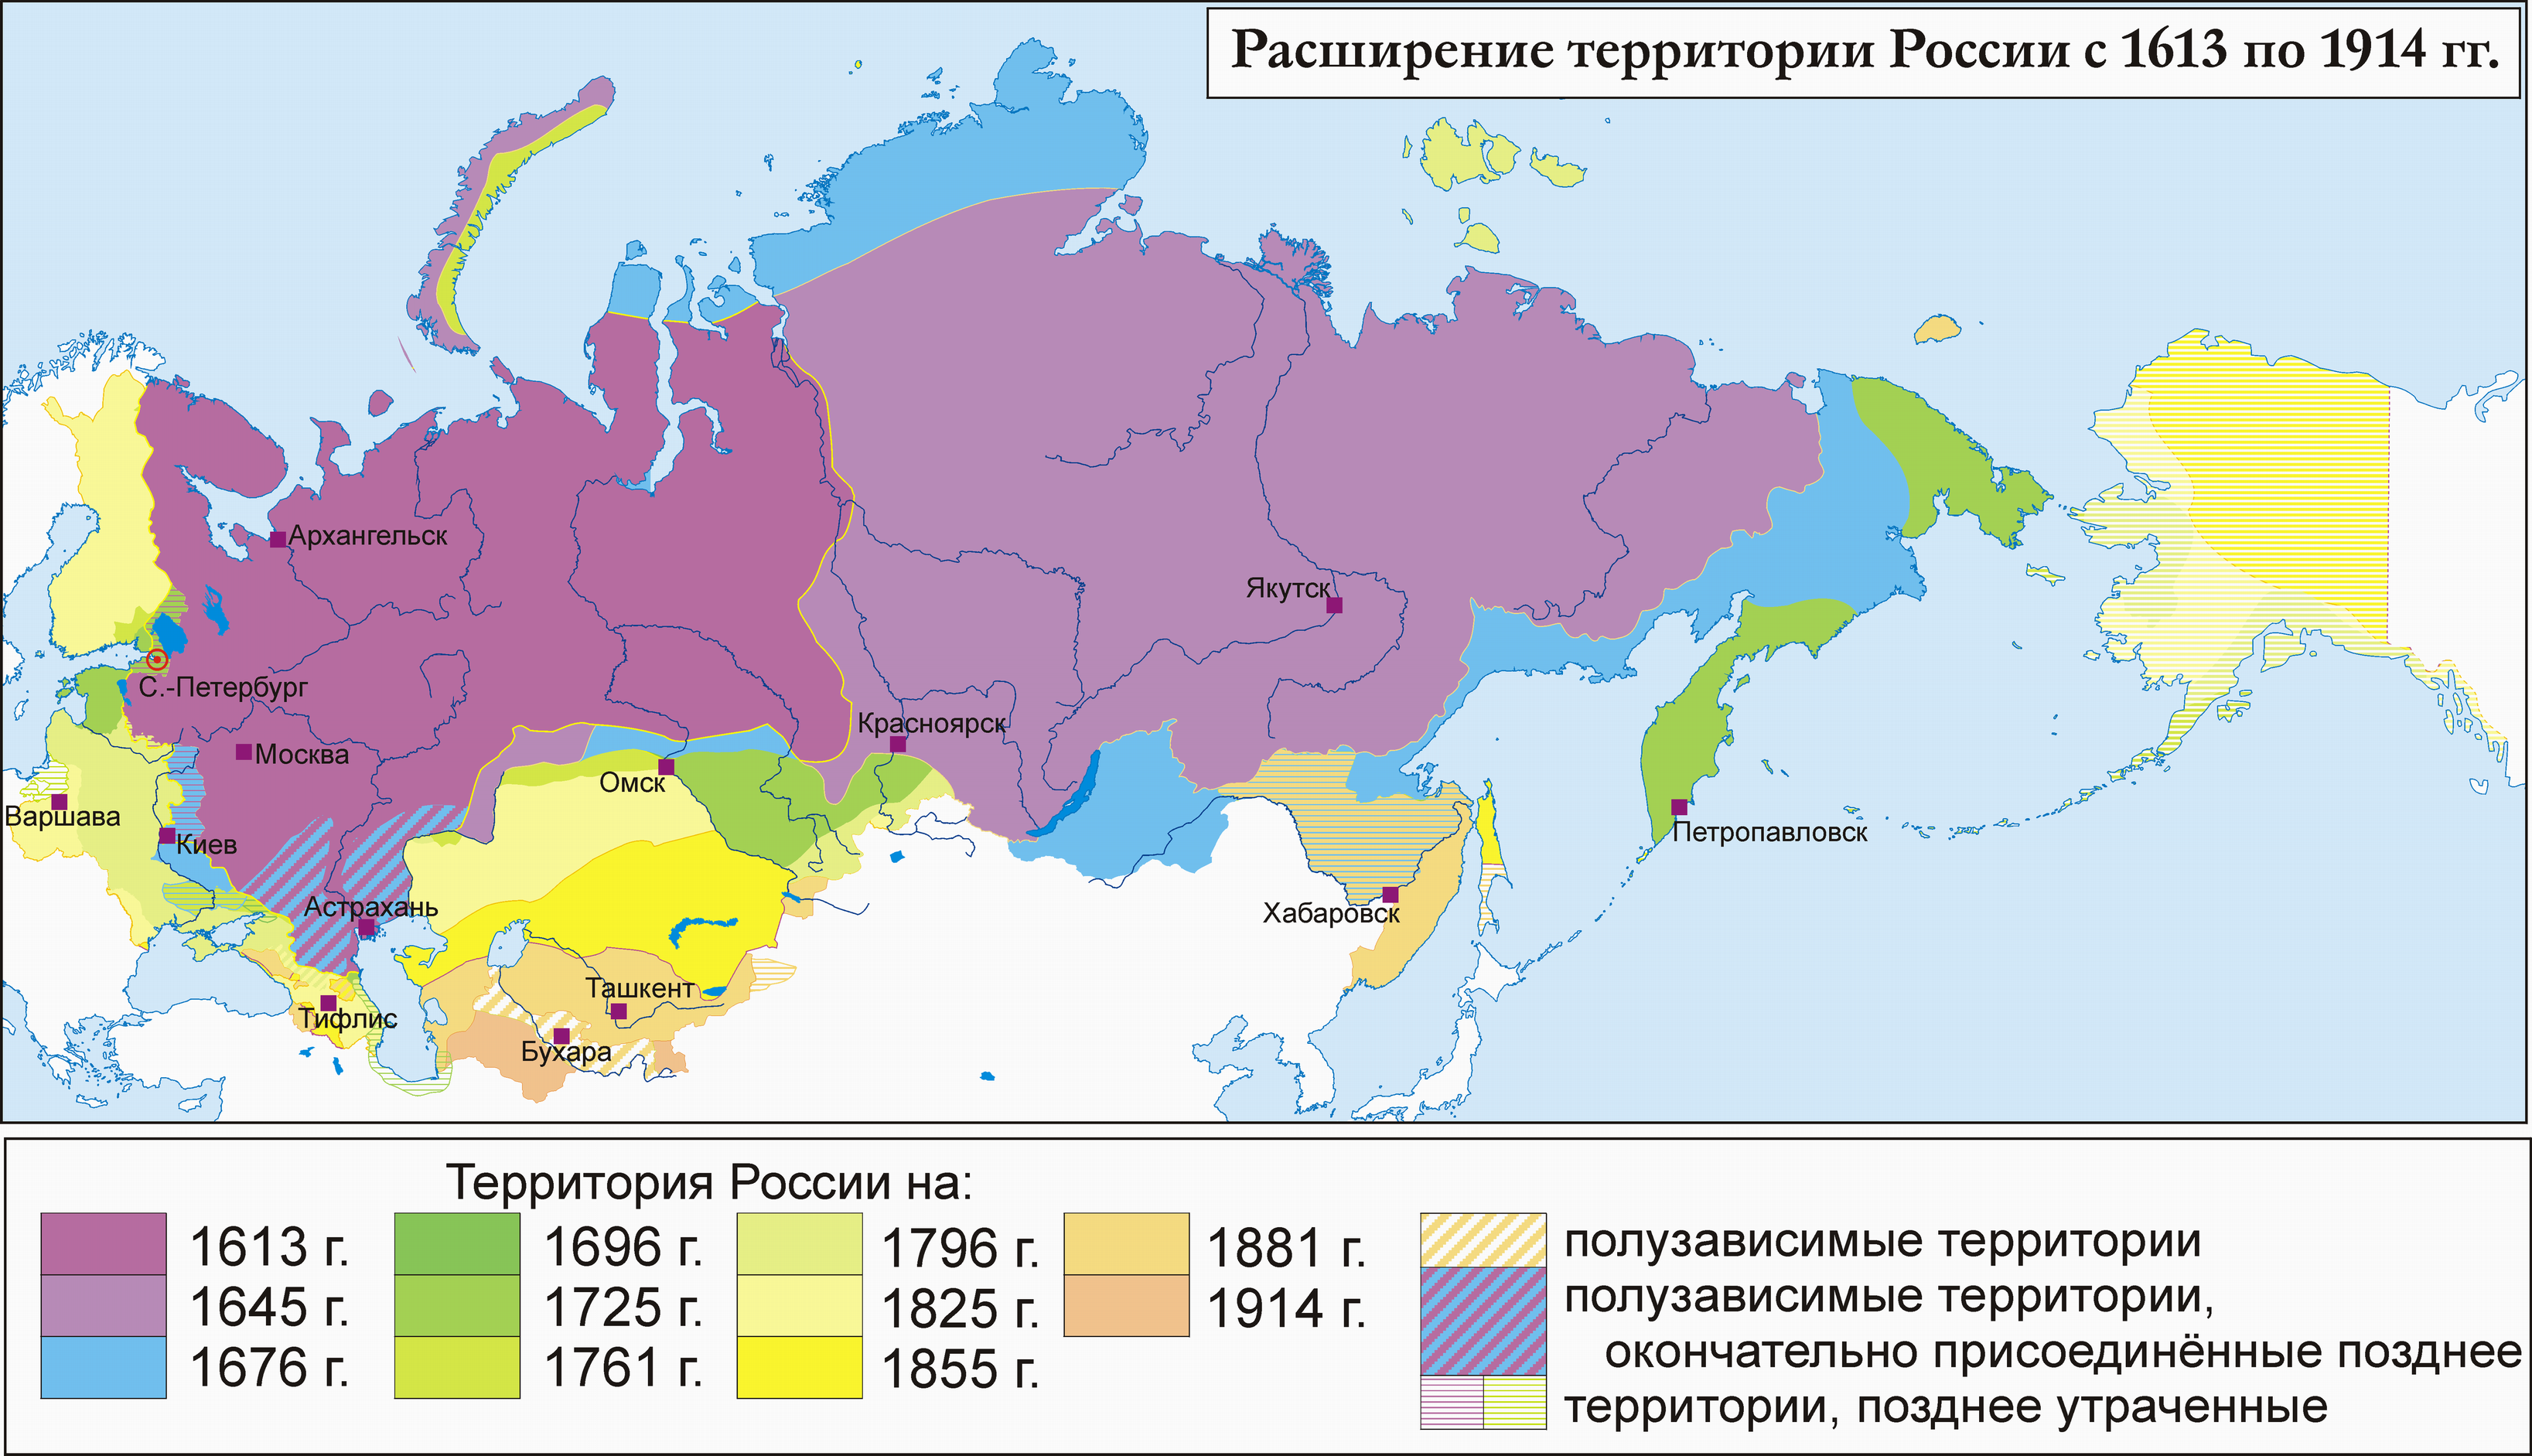 http://upload.wikimedia.org/wikipedia/commons/5/58/Growth_of_Russia_1613-1914.png